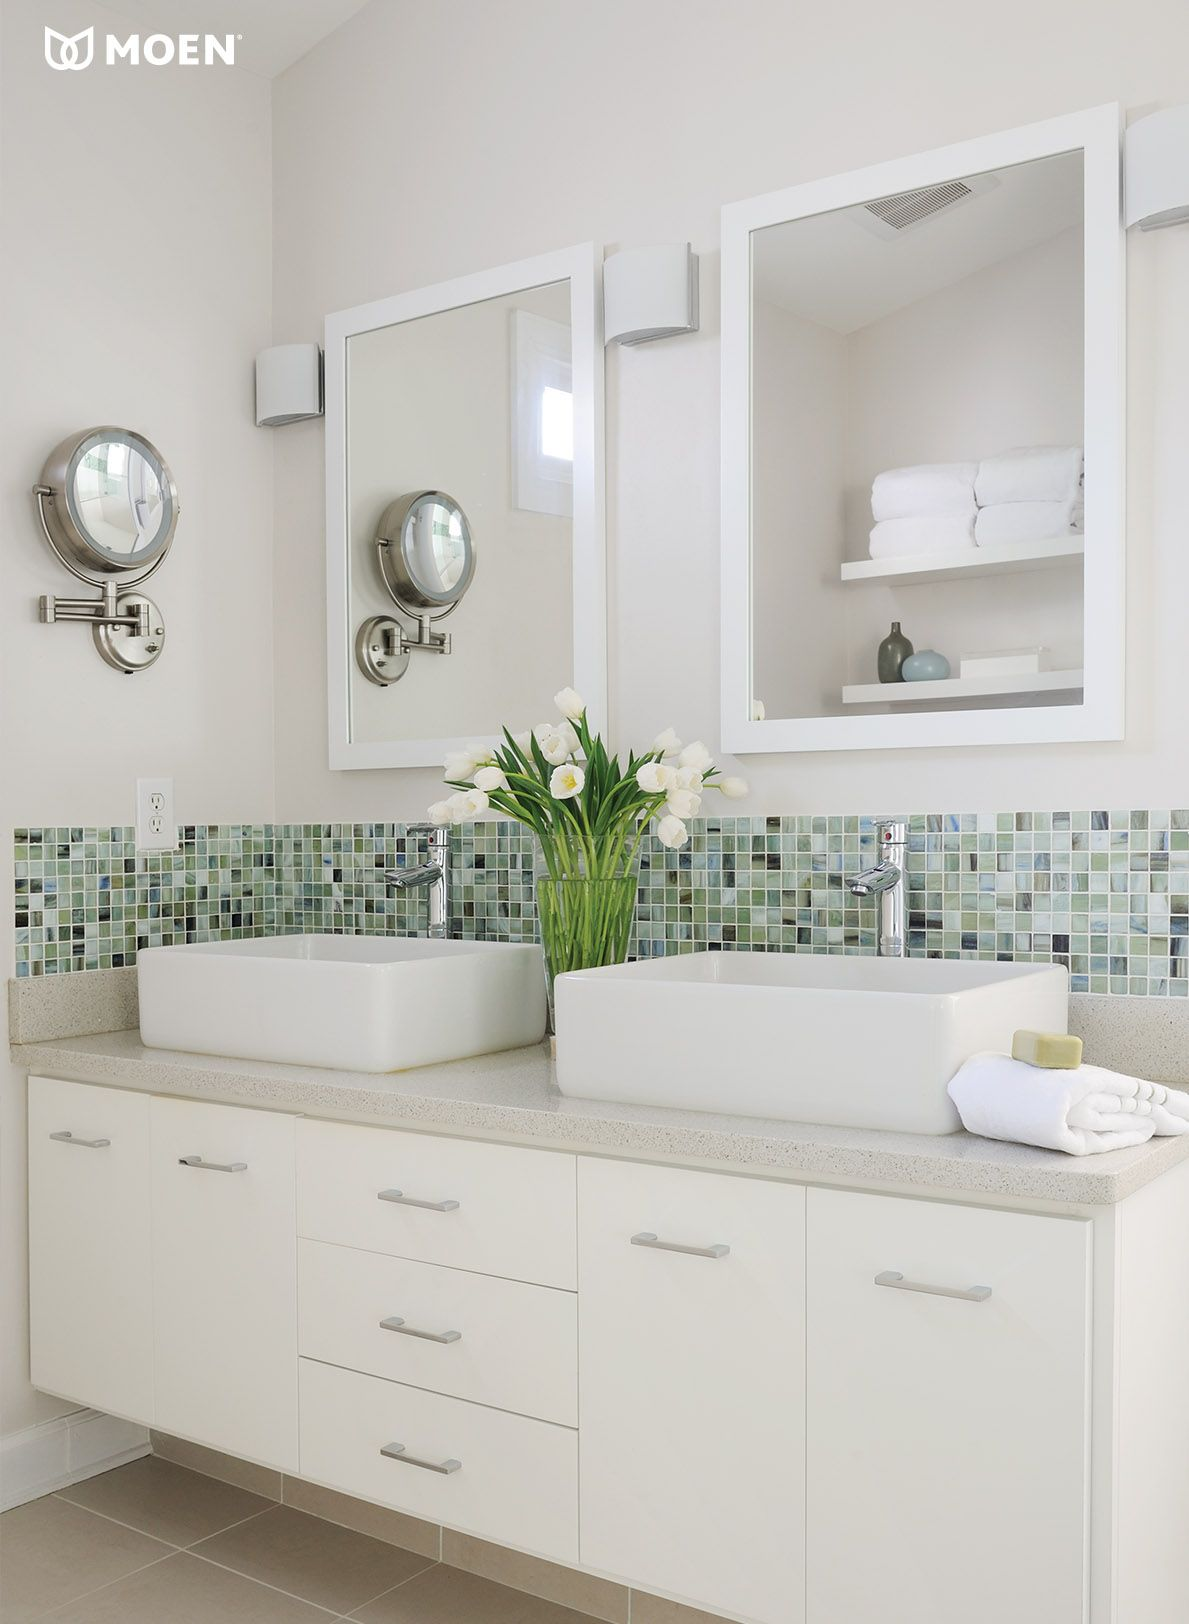 The Clean Lines And Chrome Finish Of Our Align Faucets Add A Touch